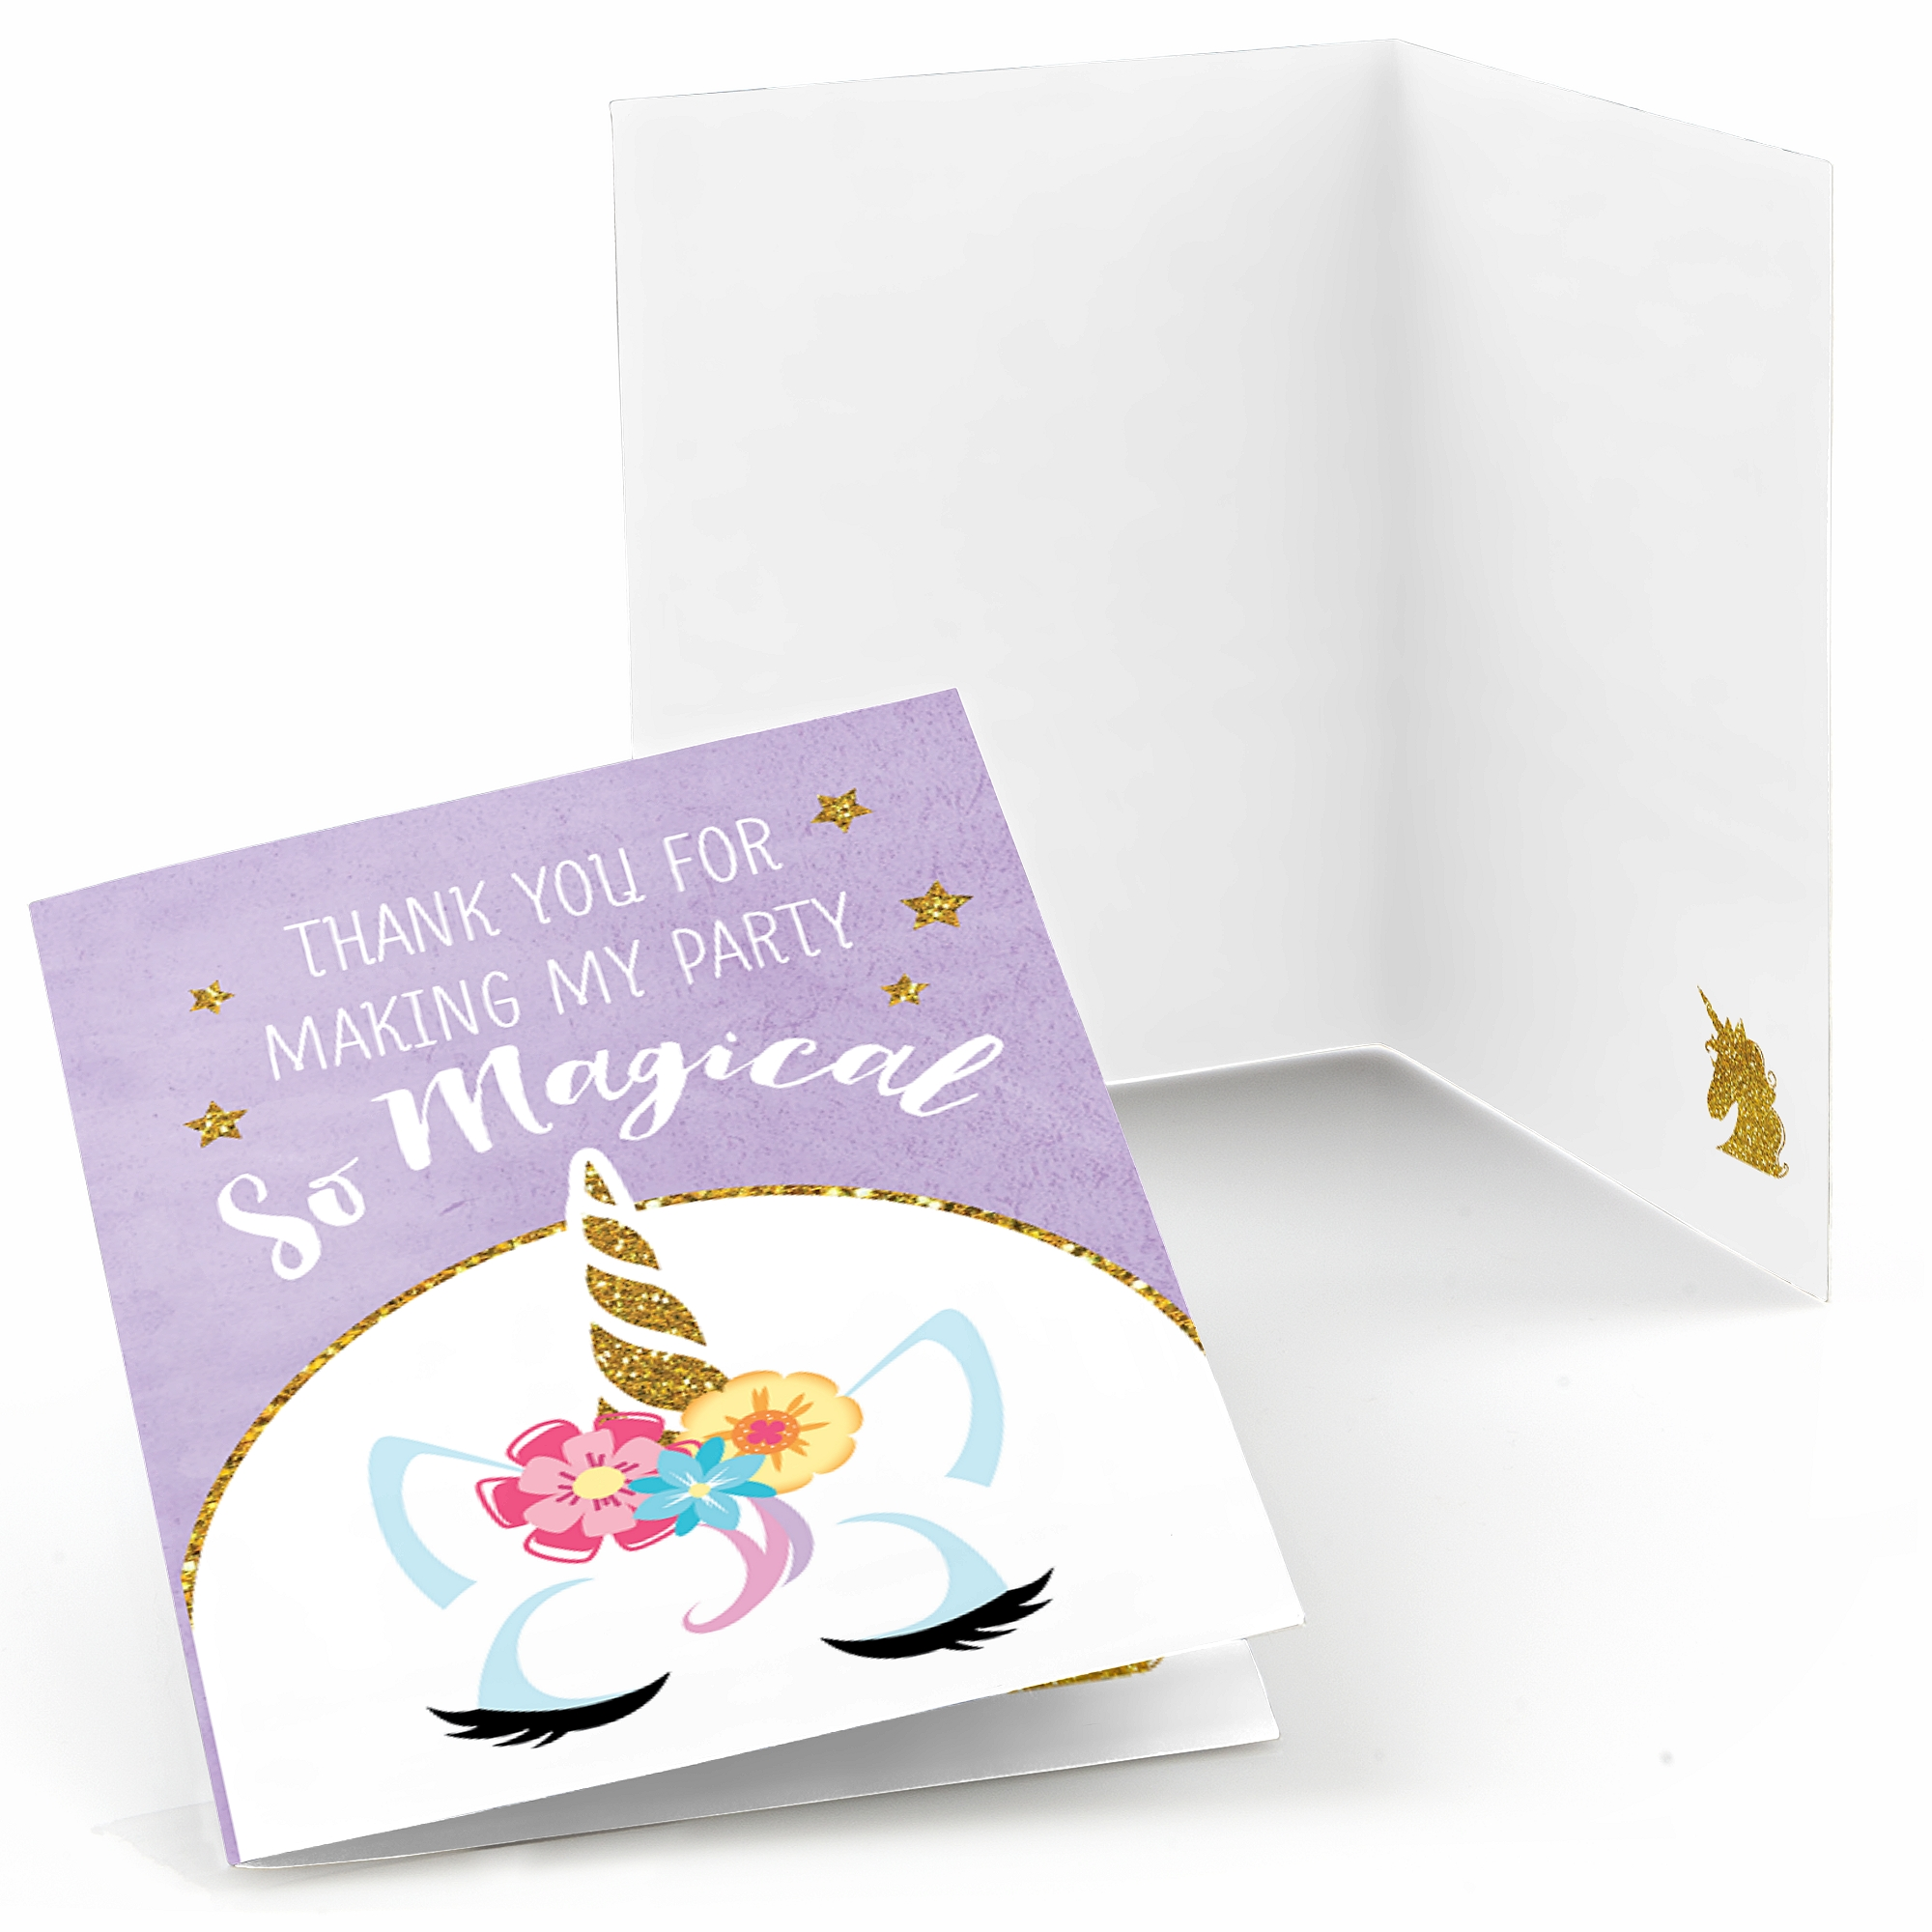 Rainbow Unicorn - Magical Unicorn Baby Shower or Birthday Party Thank You Cards (8 count)